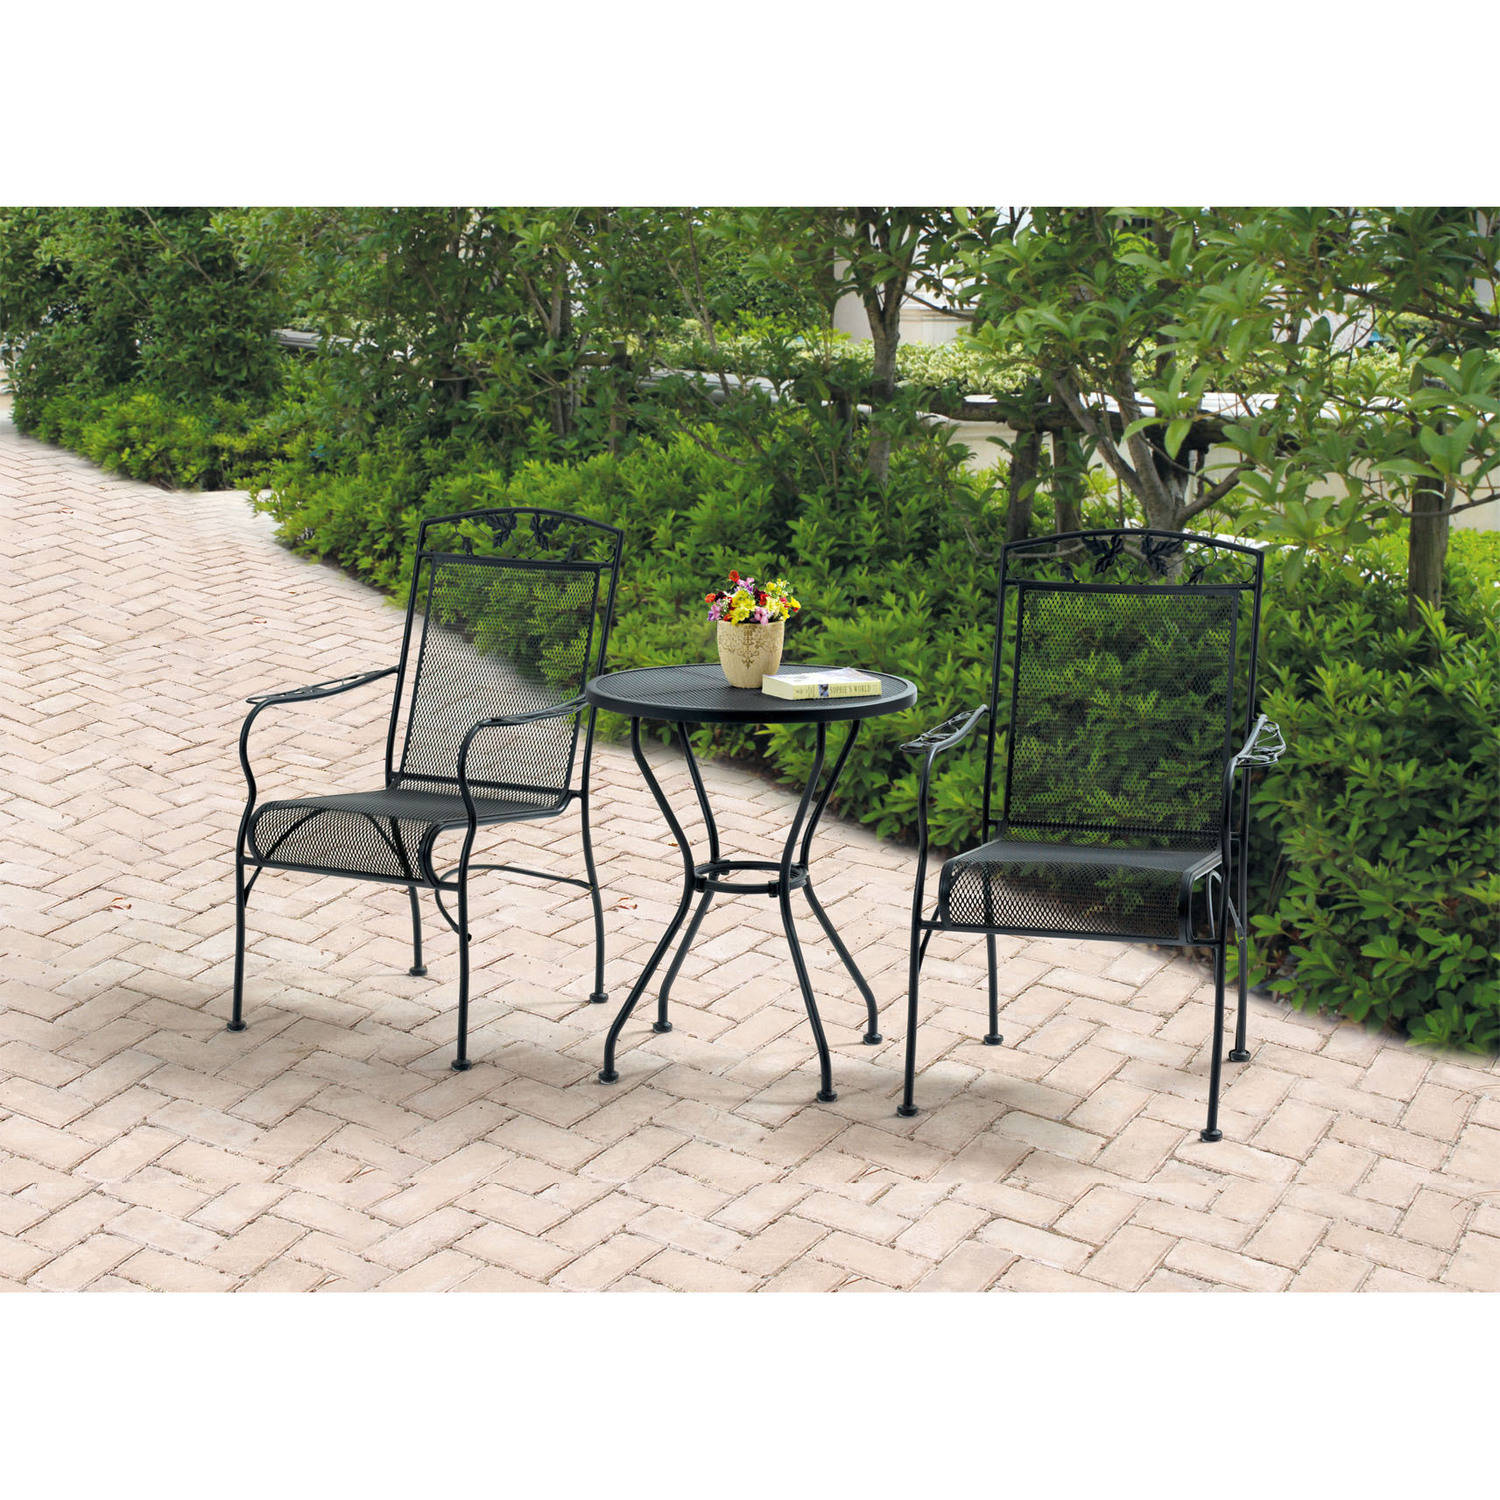 charcoal canada home patio depot rectangular outdoors p dining in chairs piece the with furniture cushioned sets largo en set categories